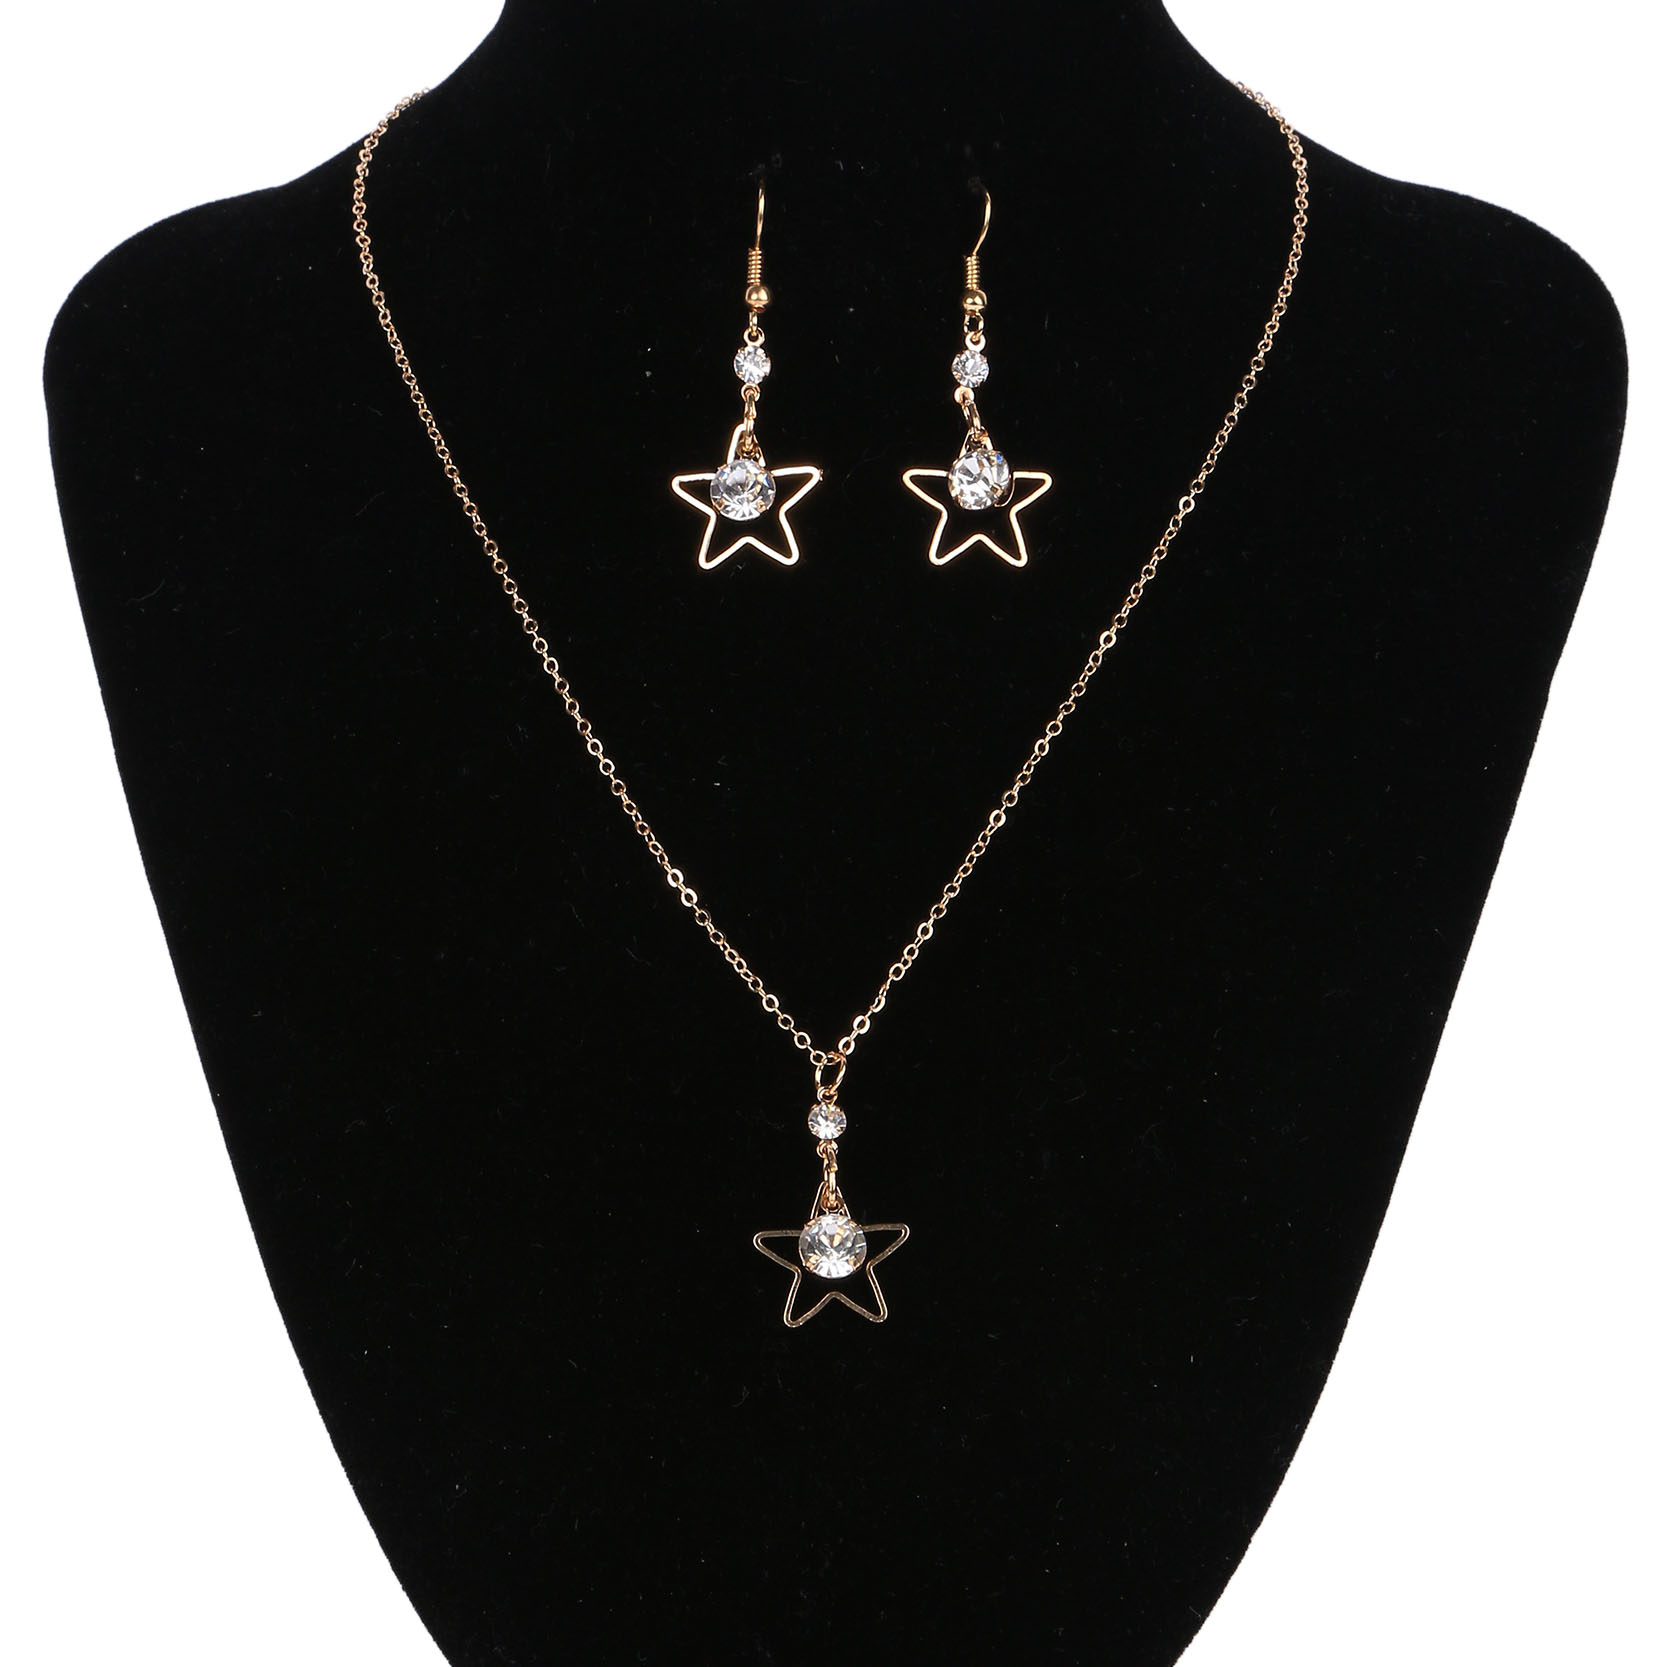 2017 New Arrival Hot Sale Wedding Jewelry Sets Rose Gold Star Statement Necklace Crystal Drop Earrings Fine Jewelry for Women